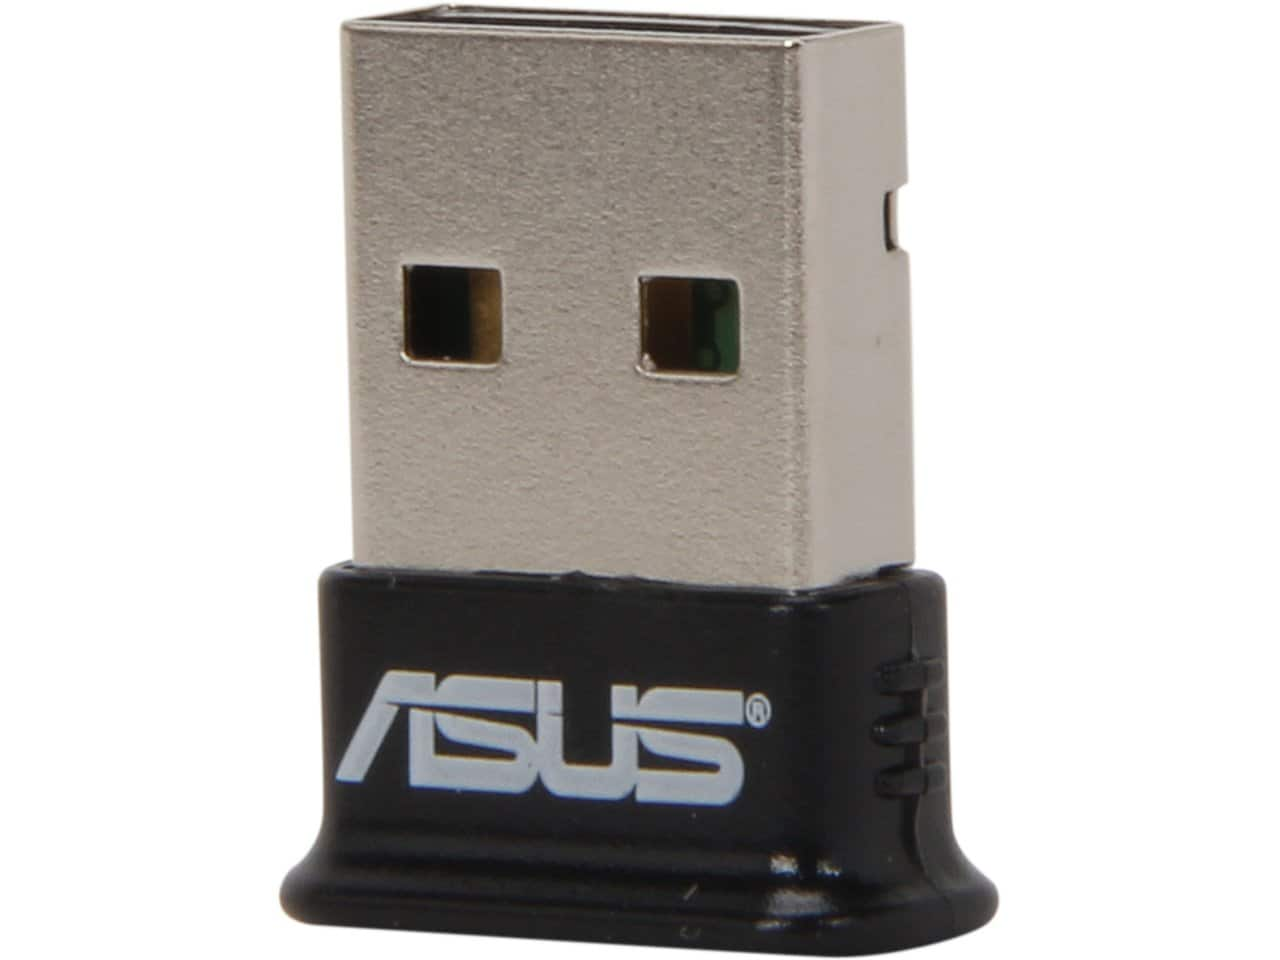 Asus USB-BT400 USB 2.0 Bluetooth 4.0 Adapter for $2.99 AR or 8-Port Netgear ProSAFE GS208 Unmanaged Gigabit Ethernet Switch for $14.99 AC + Free Shipping @ Newegg.com